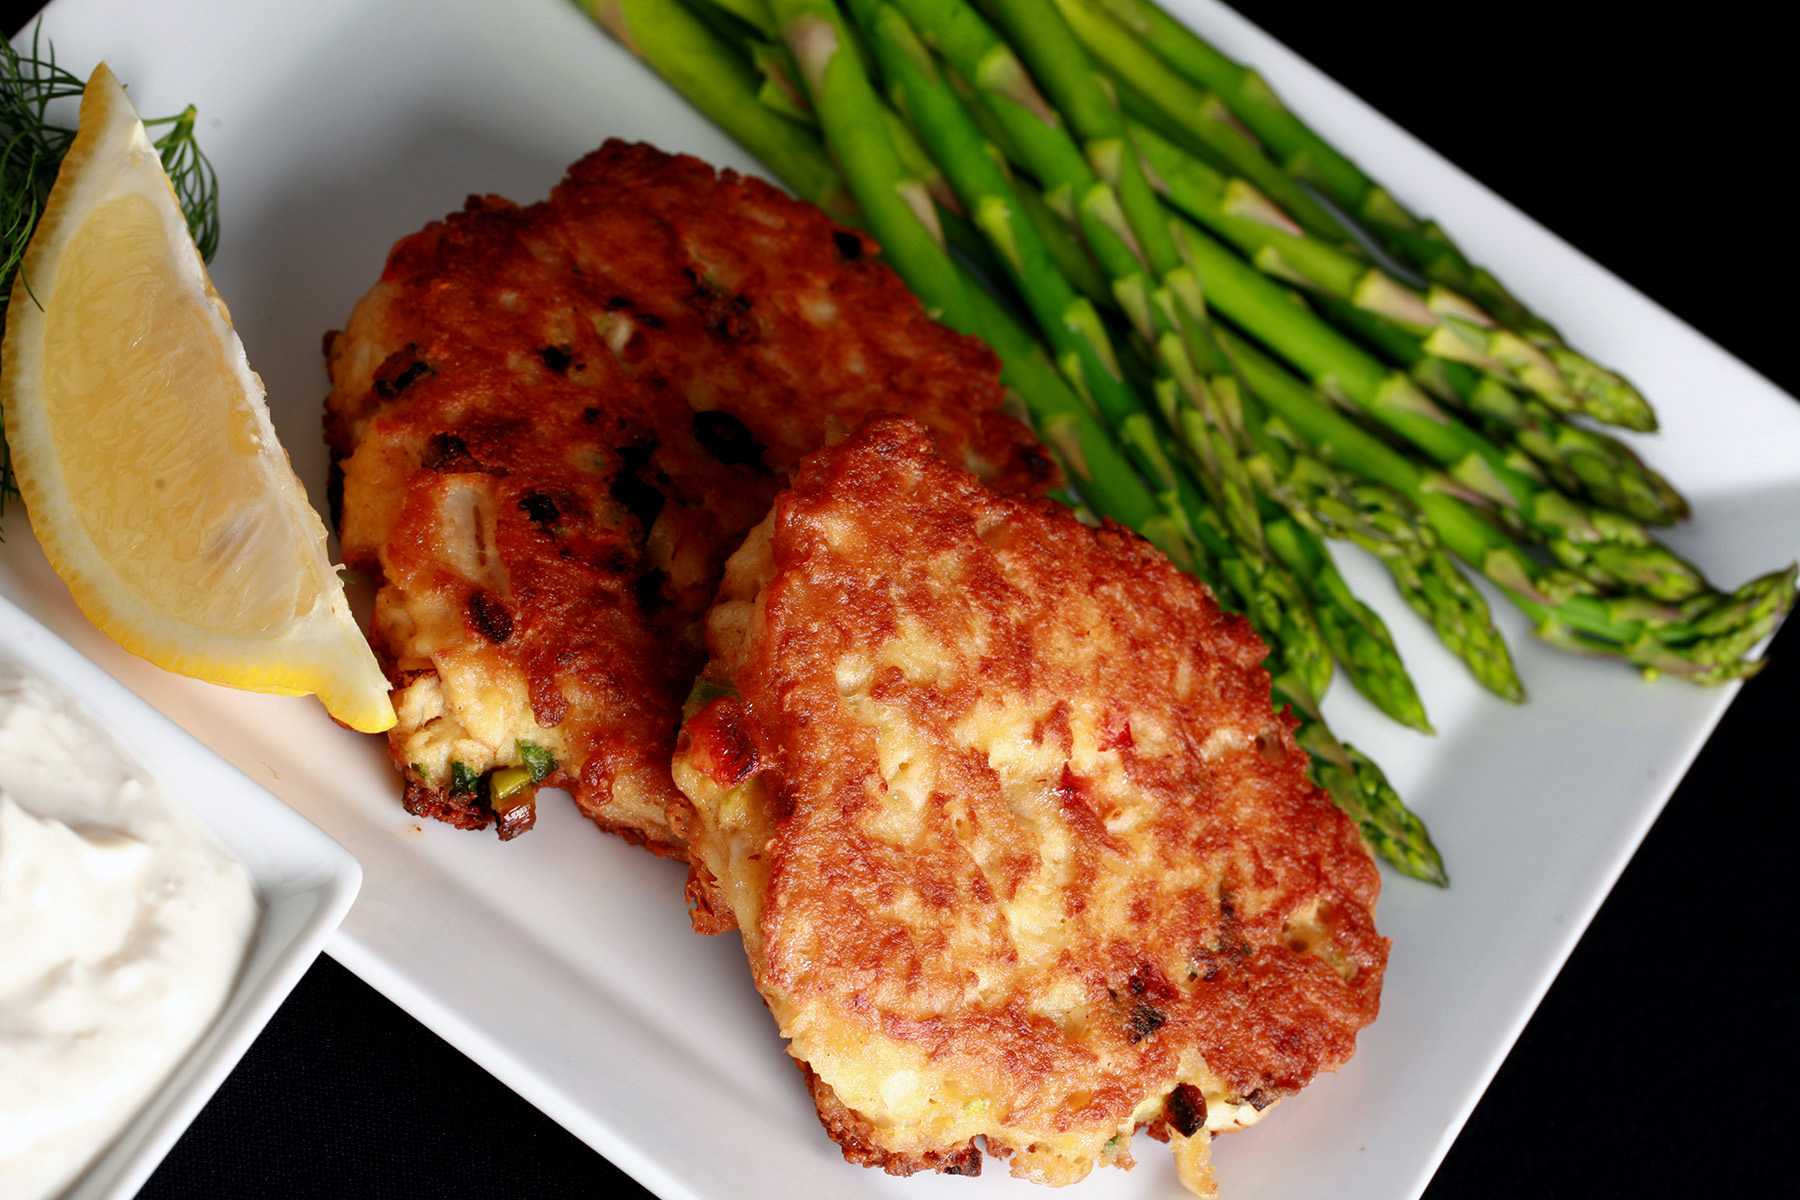 2 Gluten-free Crab Cakes on a plate with asparagus, a lemon slice, and some fresh dill.  There is a small bowl of horseradish sauce next to it.